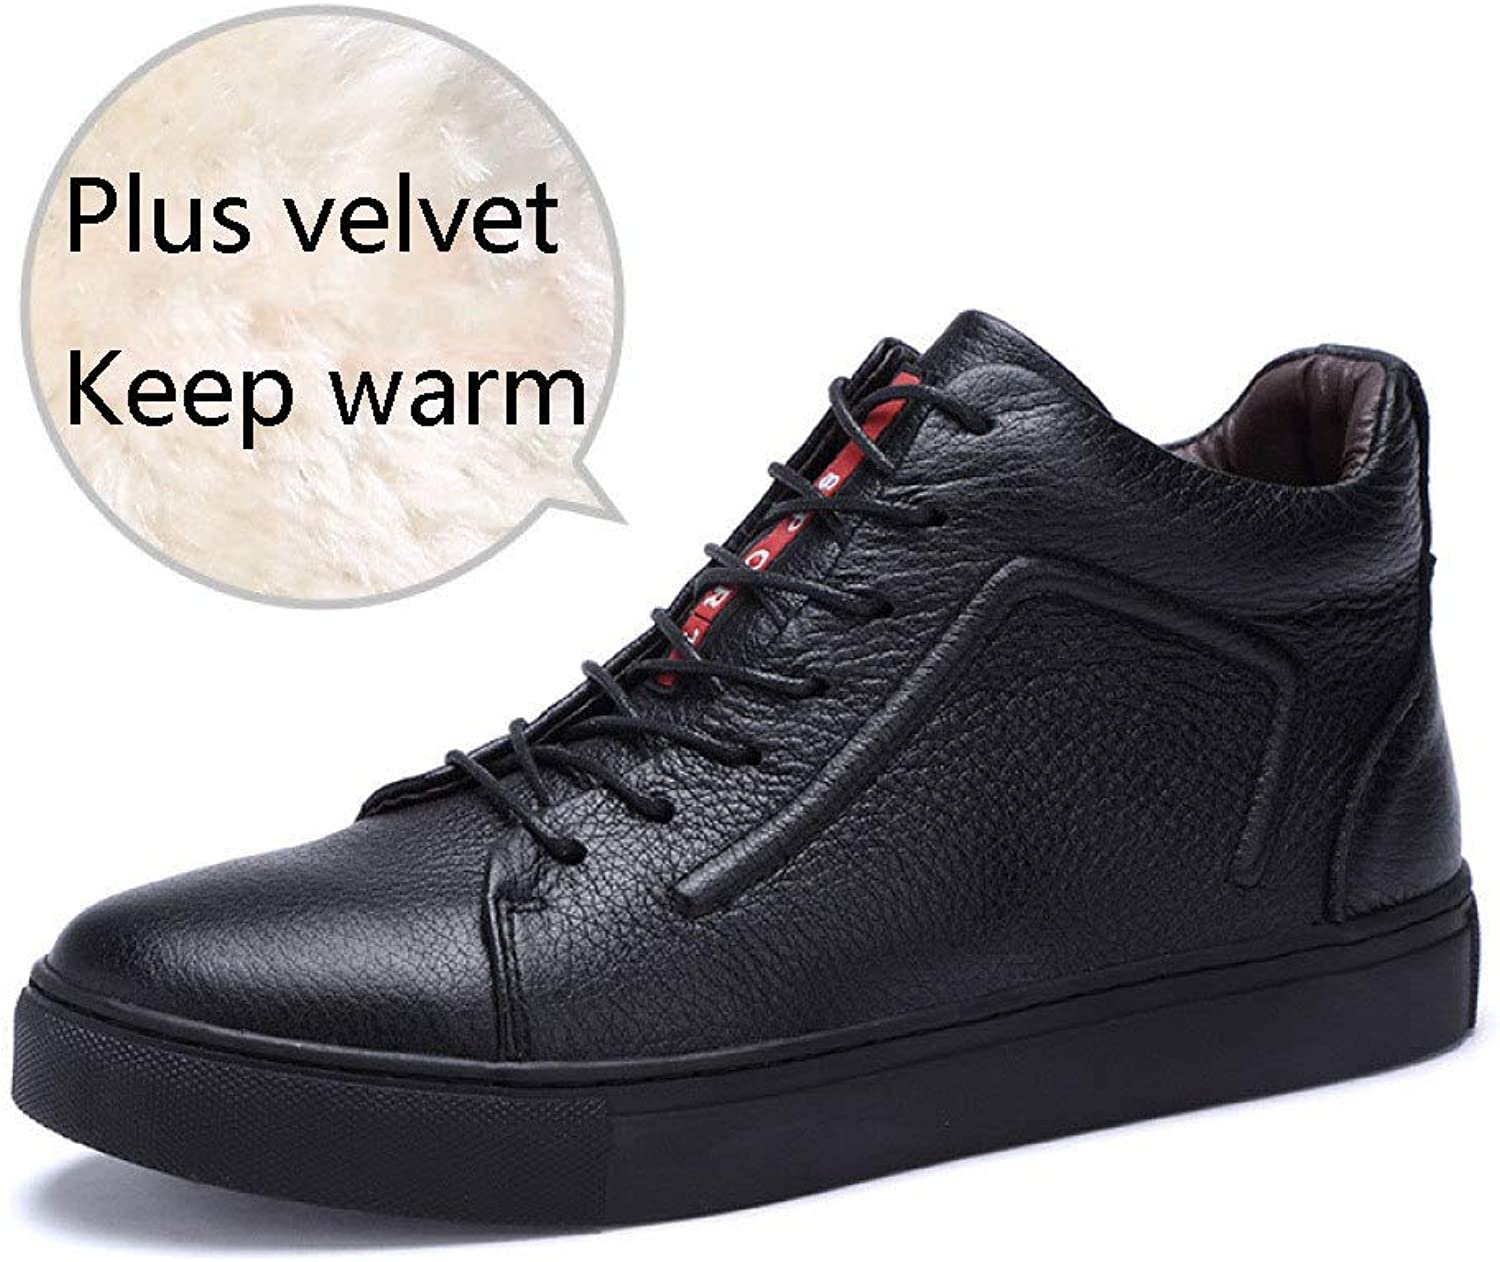 shoes Men's Martin Boots Ankle Footwear Winter Plus Velvet Warm Tooling Cotton Leather Boots Non-Slip High-top Desert shoes,Black-40